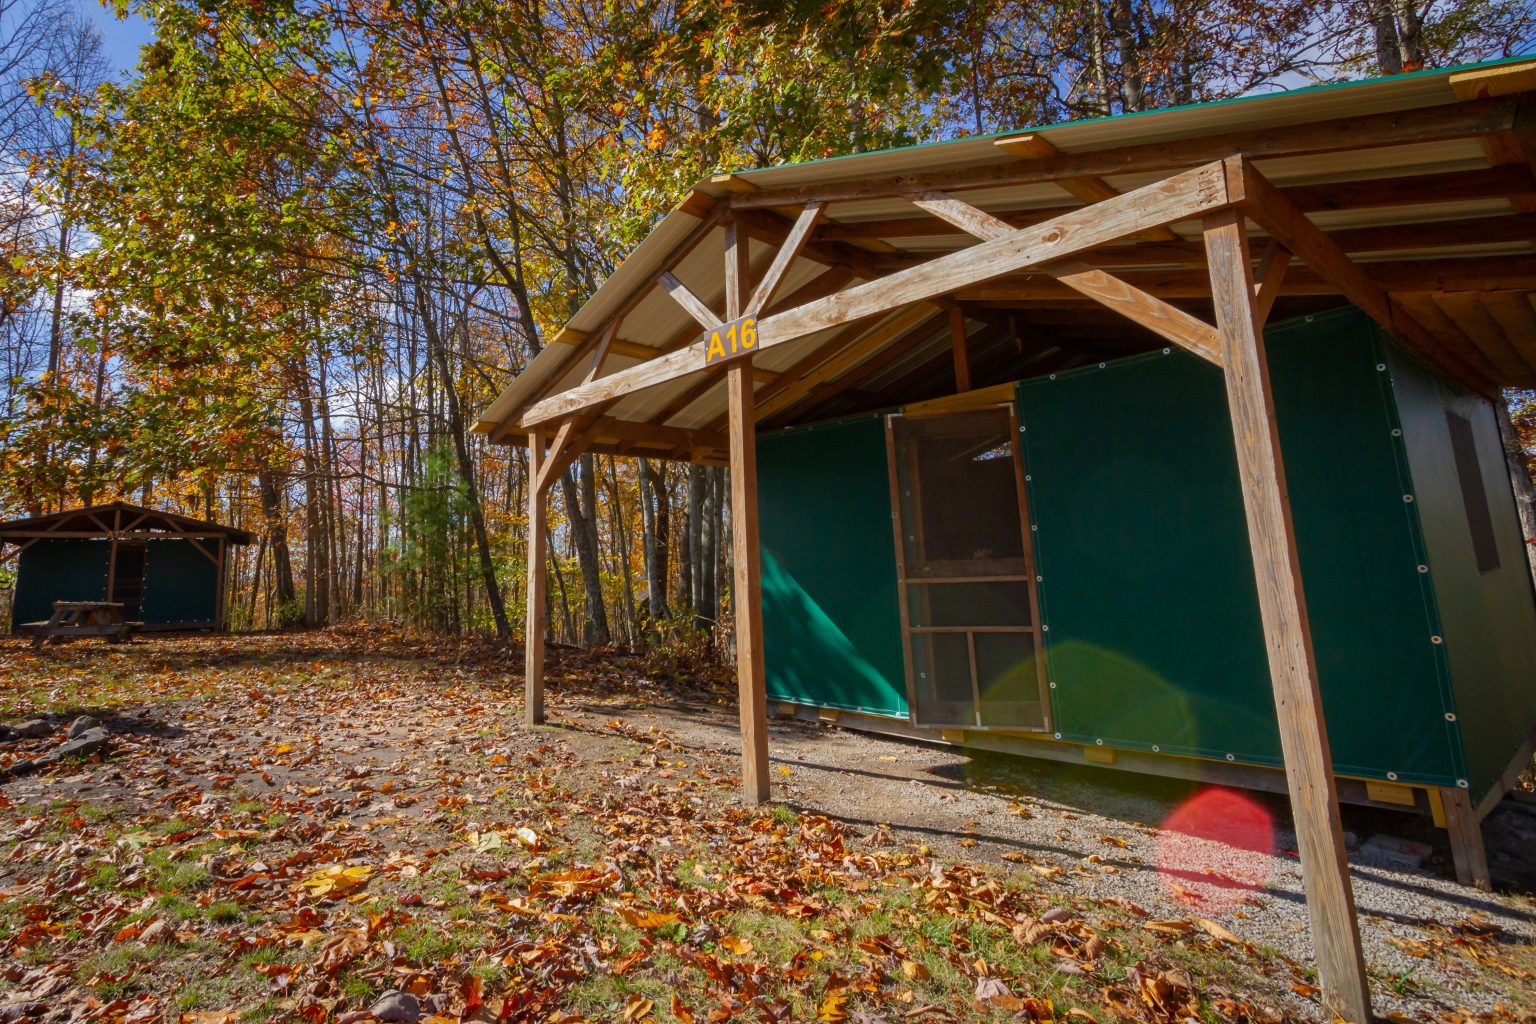 An outside view of ACE's new river gorge rustic lodging platform tent rental.